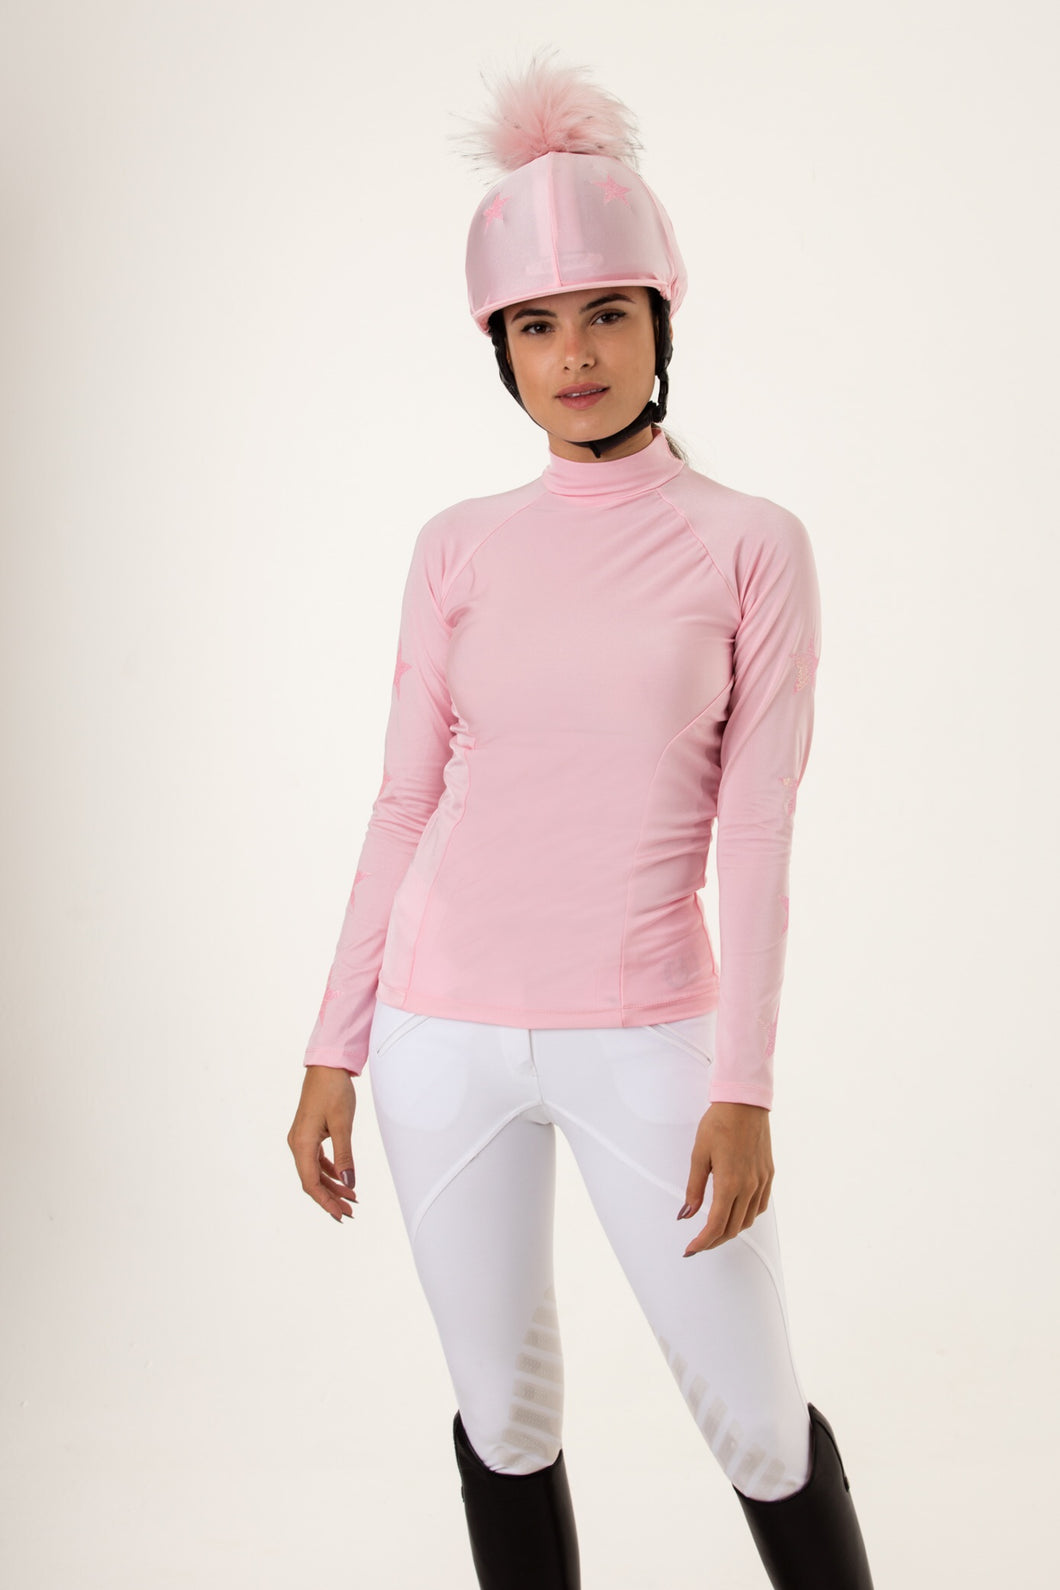 Baby Pink Understated XC Set